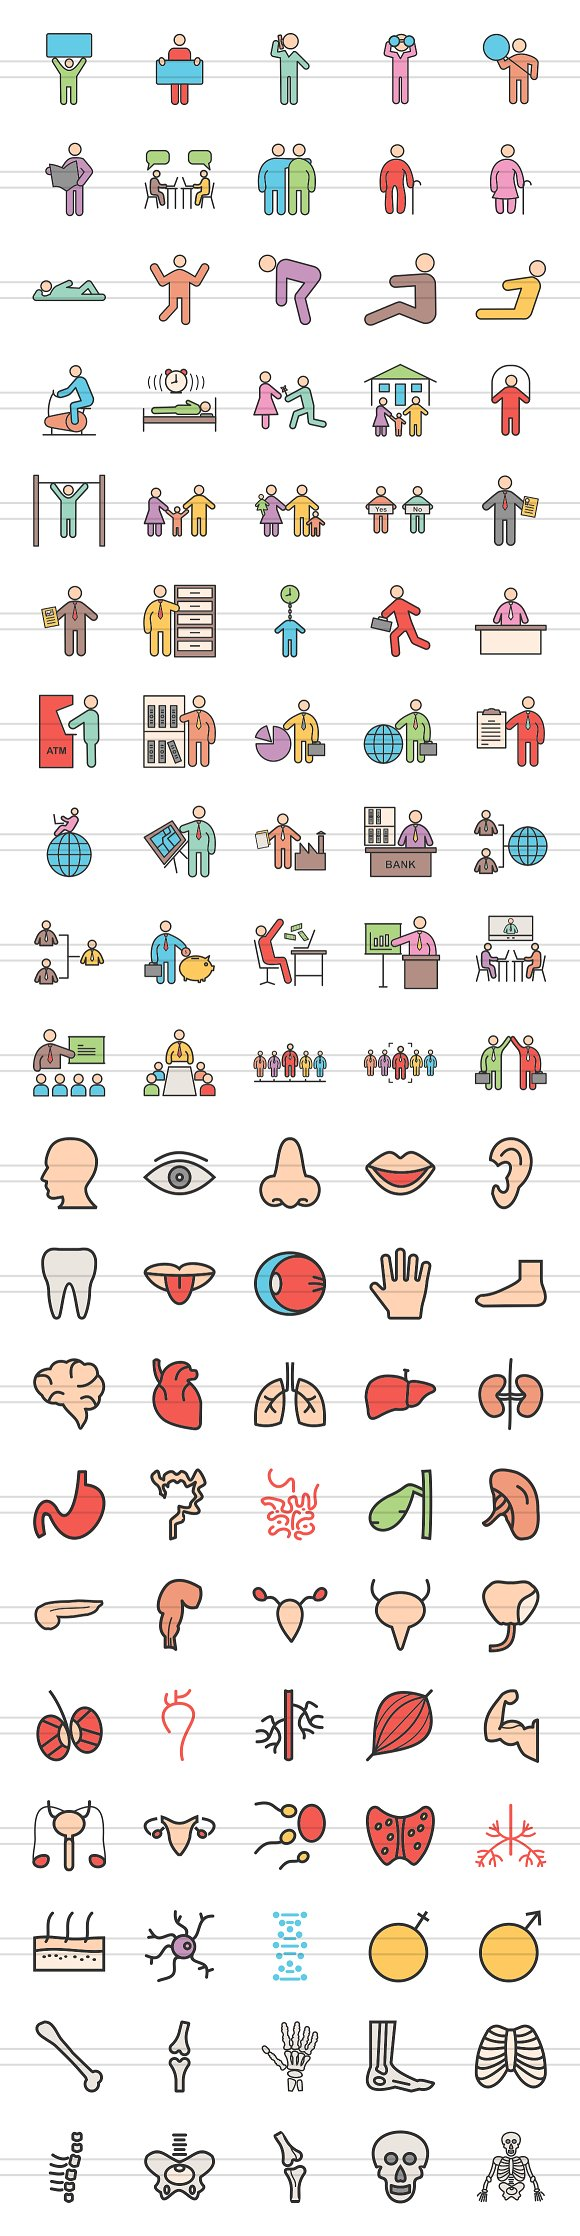 100 Human Anatomy Filled Line Icons in Graphics - product preview 1